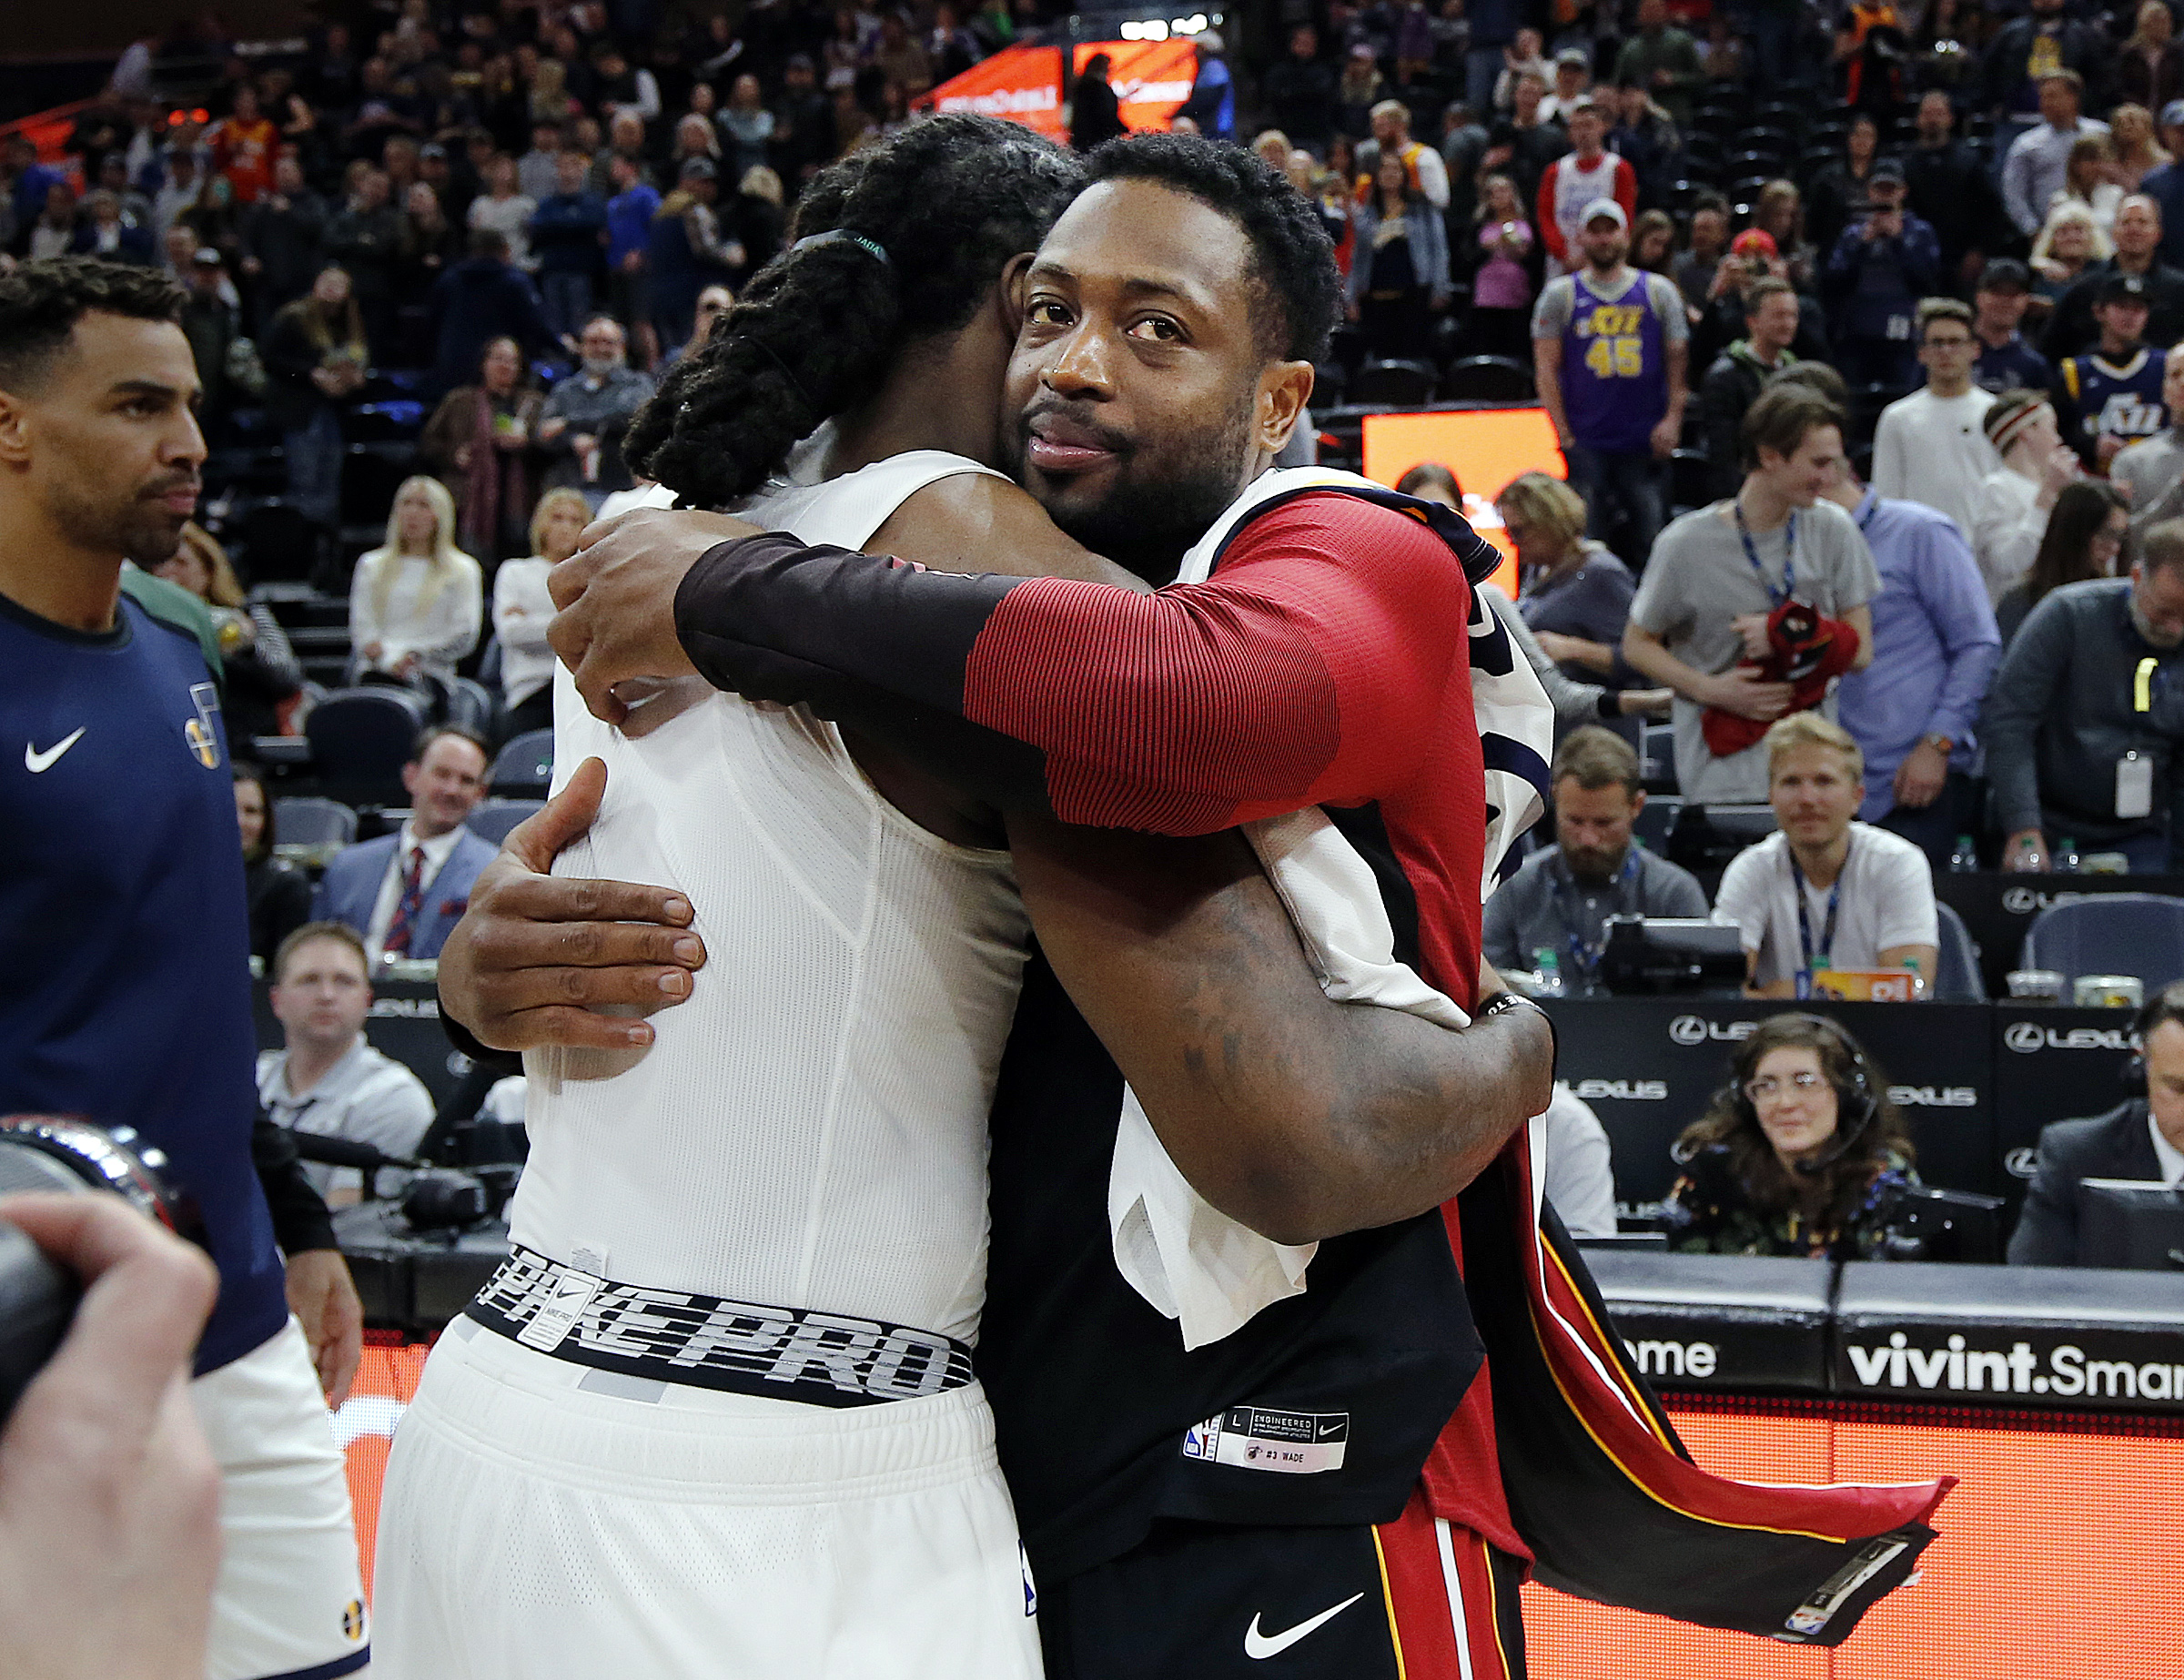 Miami Heat legend Dwayne Wade recently revealed in a new interview that he still worries about not having any money, according to Yahoo! Finance. Utah Jazz forward Jae Crowder, left, and Miami Heat guard Dwyane Wade hug after exchanging jerseys following Wade's last NBA game in Salt Lake City on Wednesday, Dec. 12, 2018.